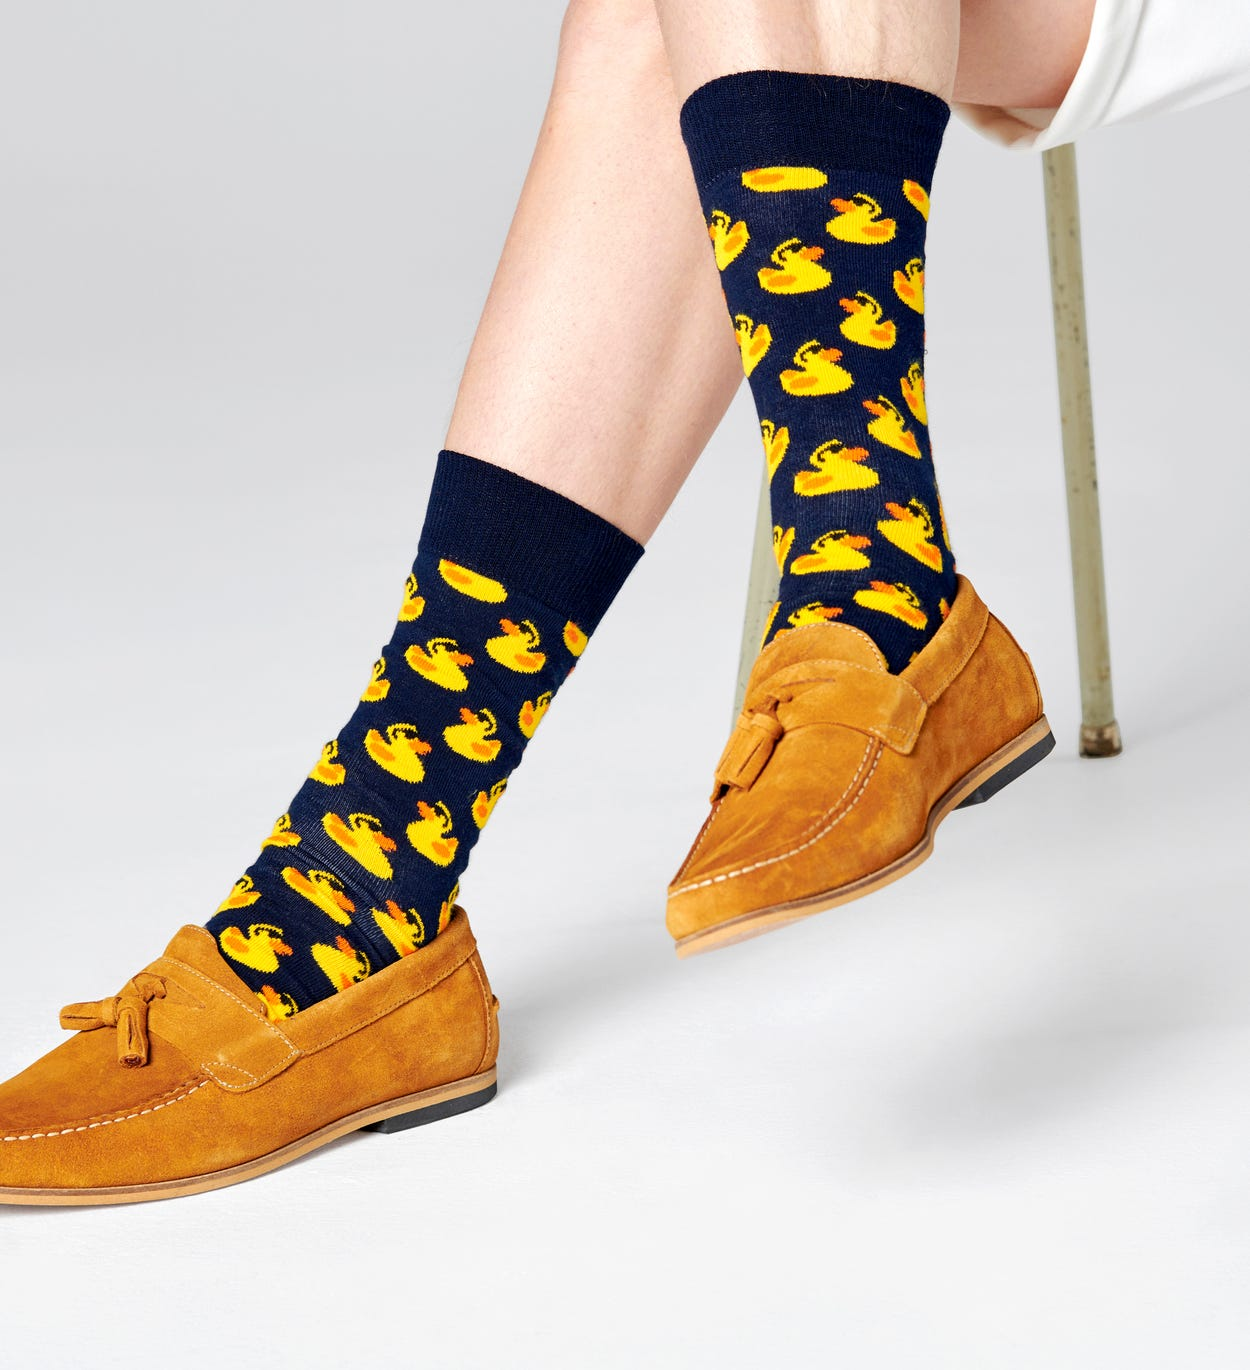 Patterned Navy Socks: Rubber Duck | Happy Socks